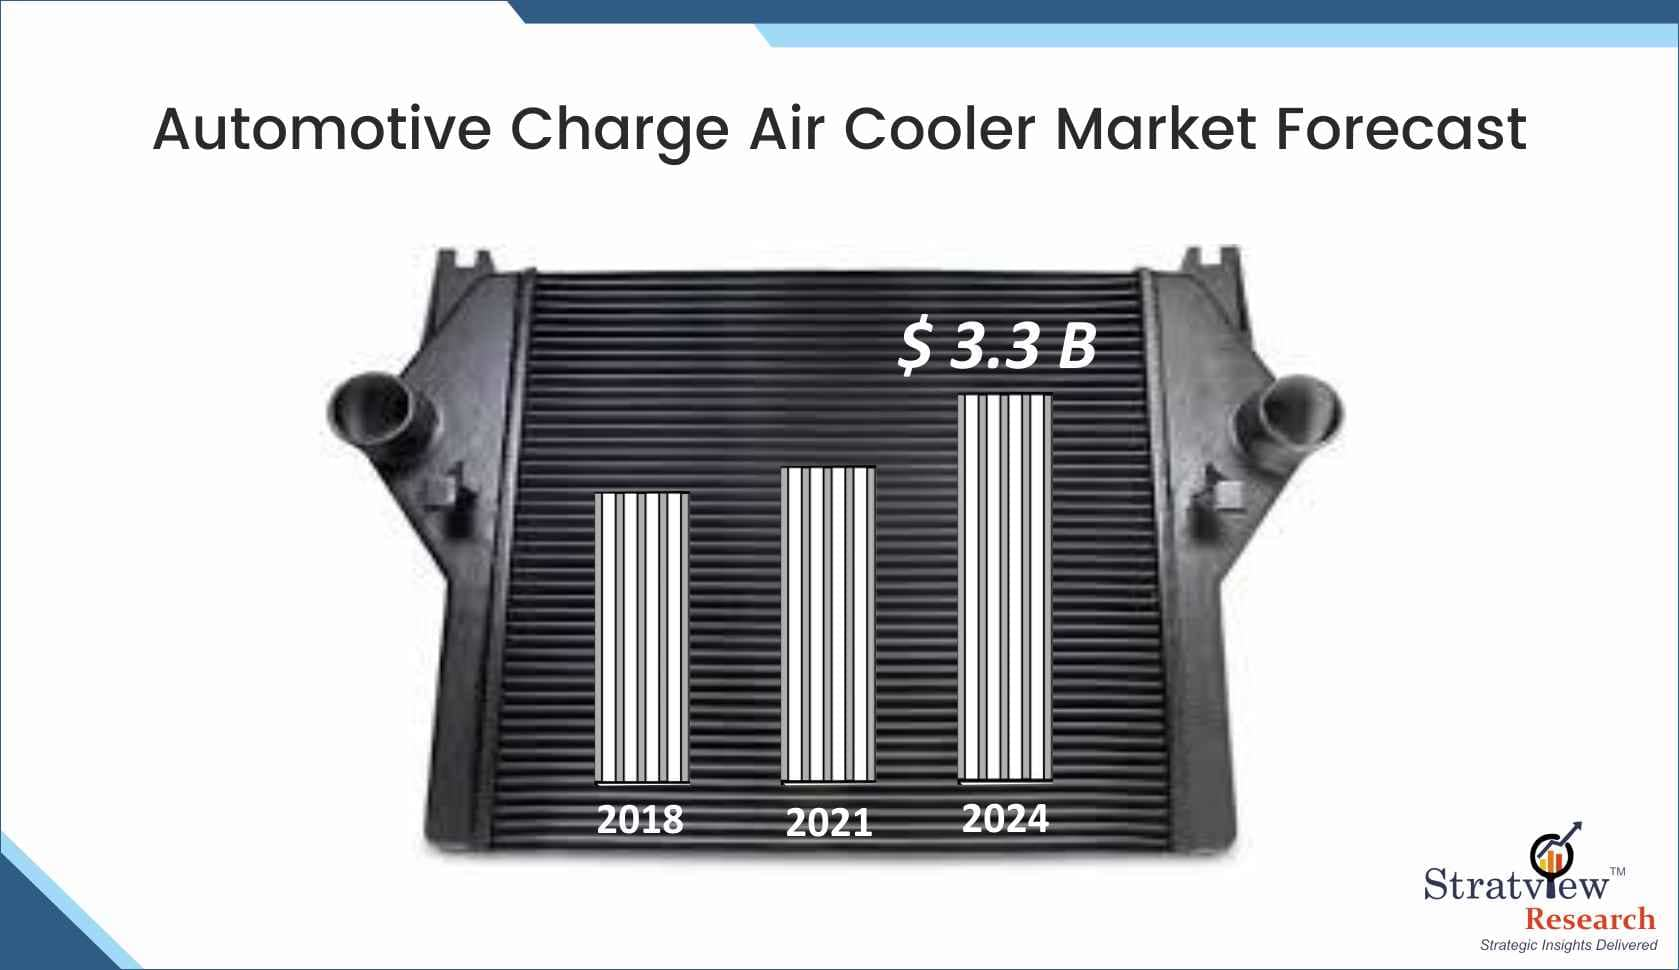 Automotive Charge Air Cooler Market Forecast